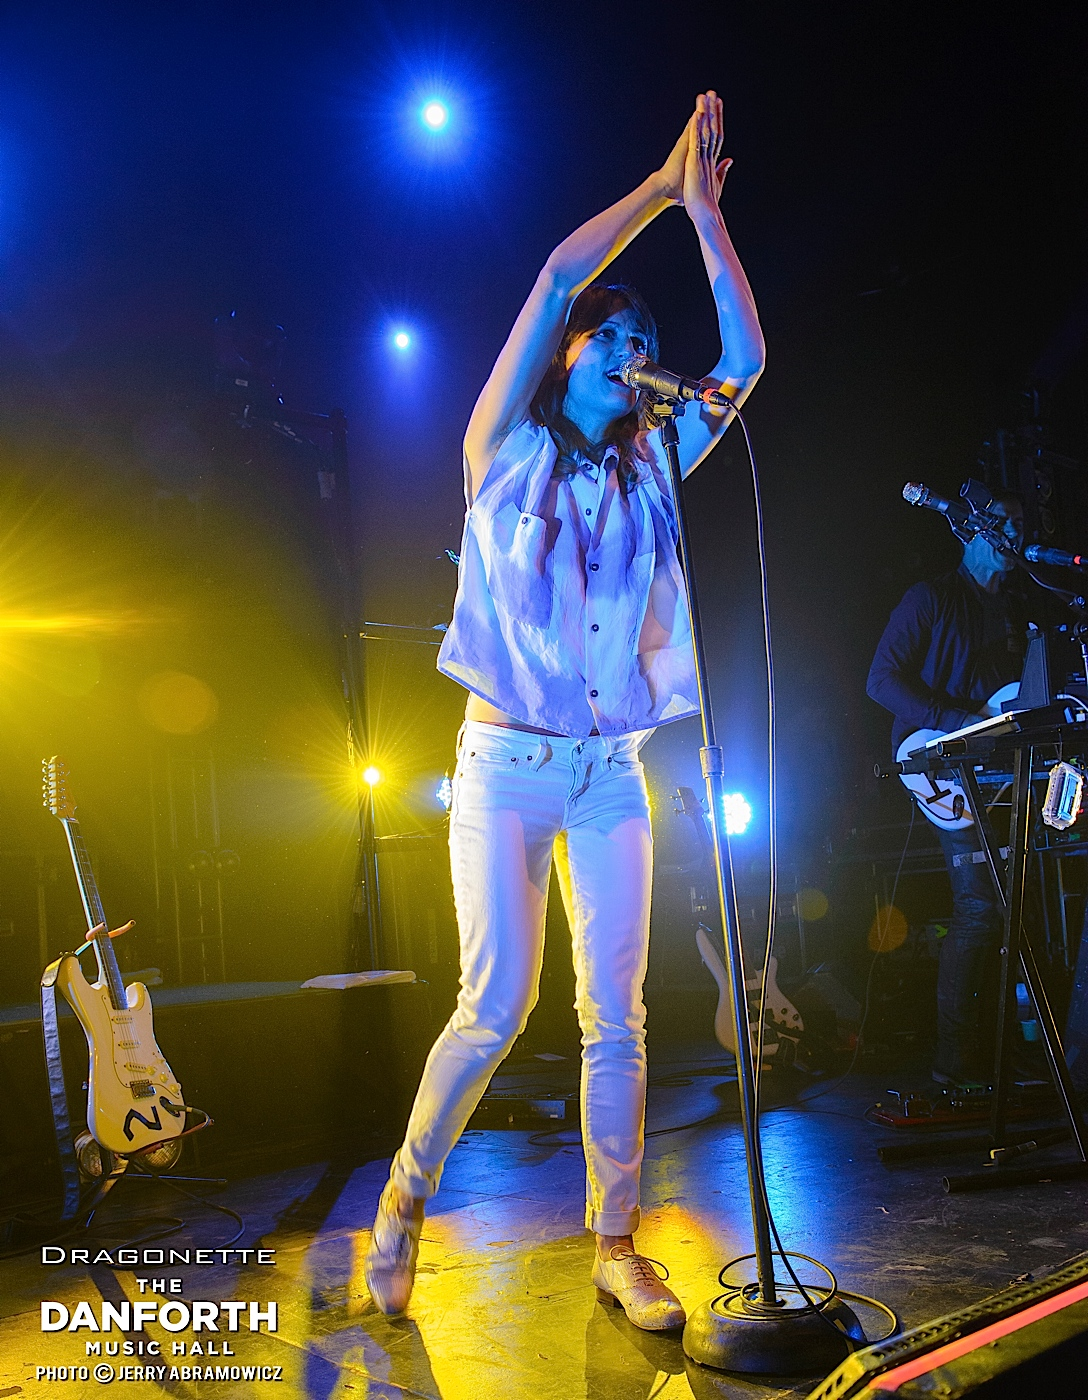 20130510 Dragonette performs at The Danforth Music Hall Toronto 0305